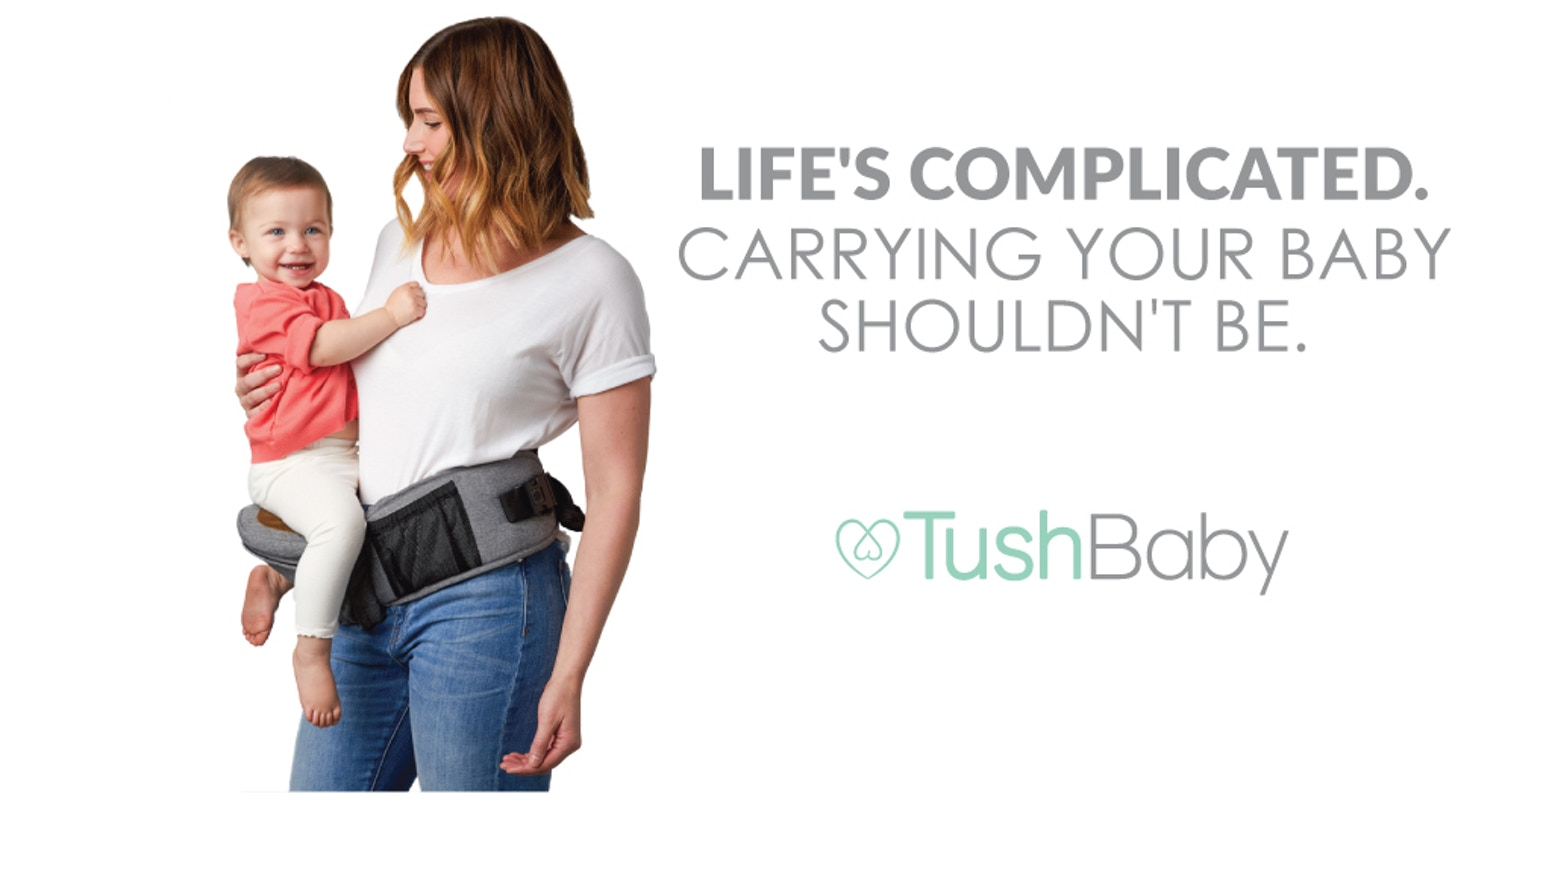 TushBaby is a unique, strapless baby carrier that helps you carry your kids comfortably & easily access the things you need.